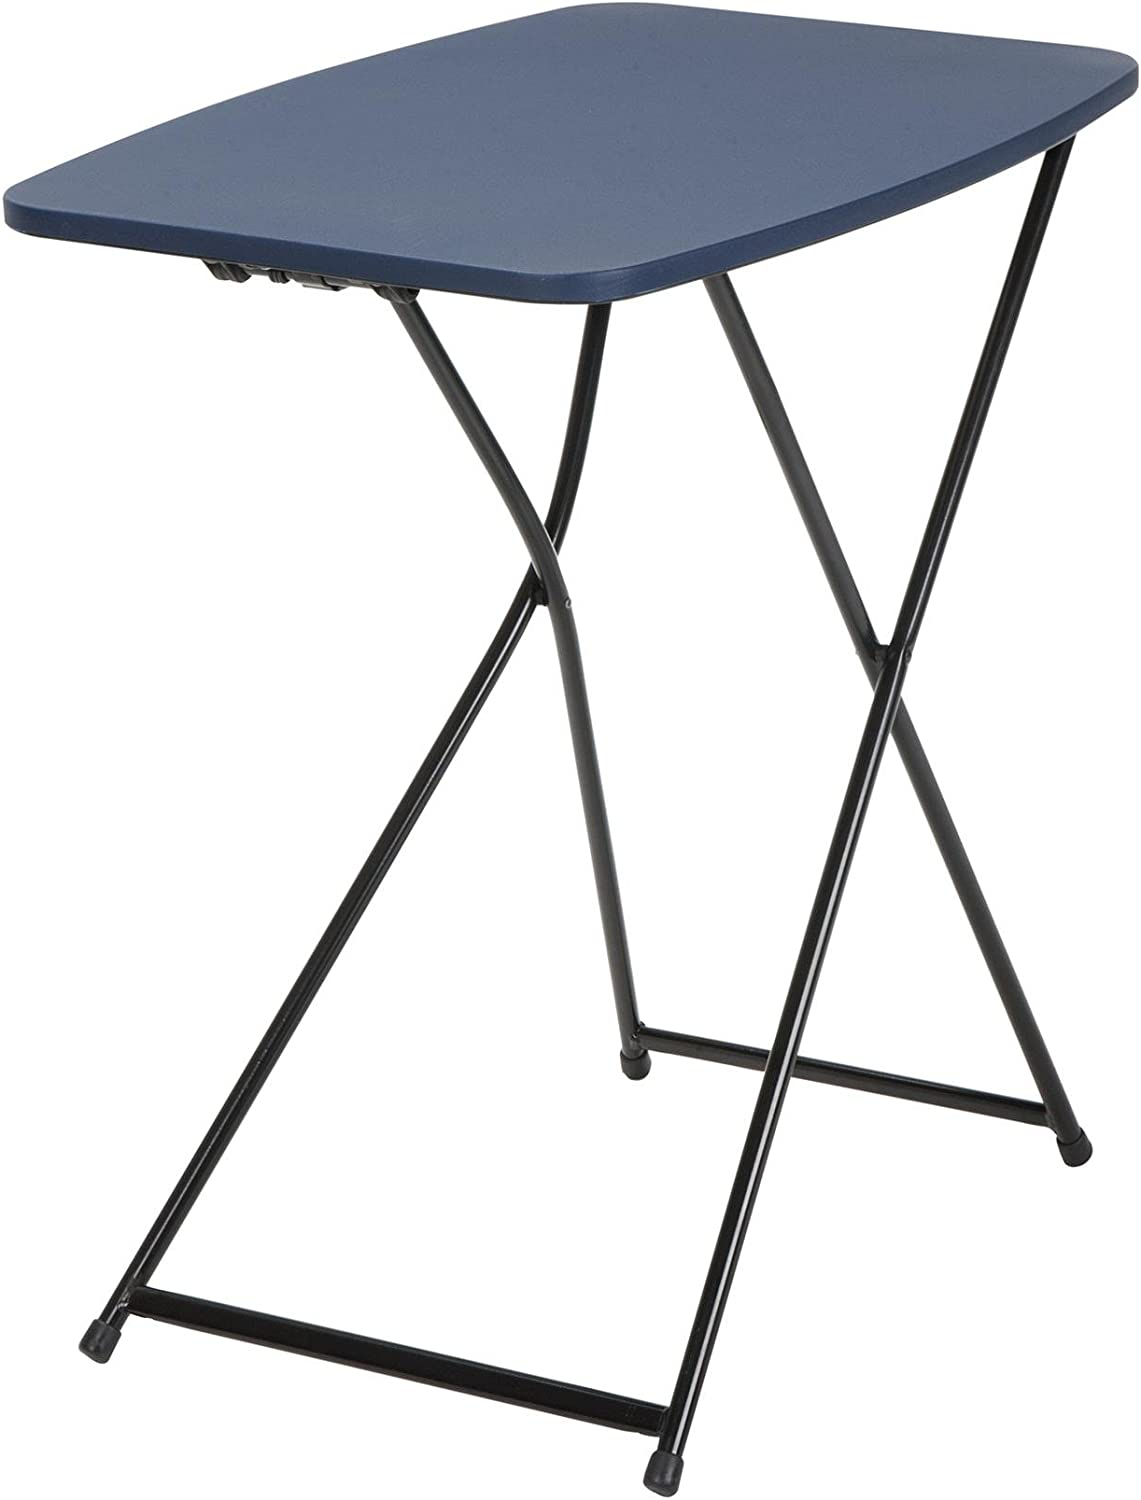 Cosco Products 37129DBK2E 18  x 26  Indoor Outdoor Adjustable Height Personal Folding Tailgate Table, Dark bluee, 2 Pack